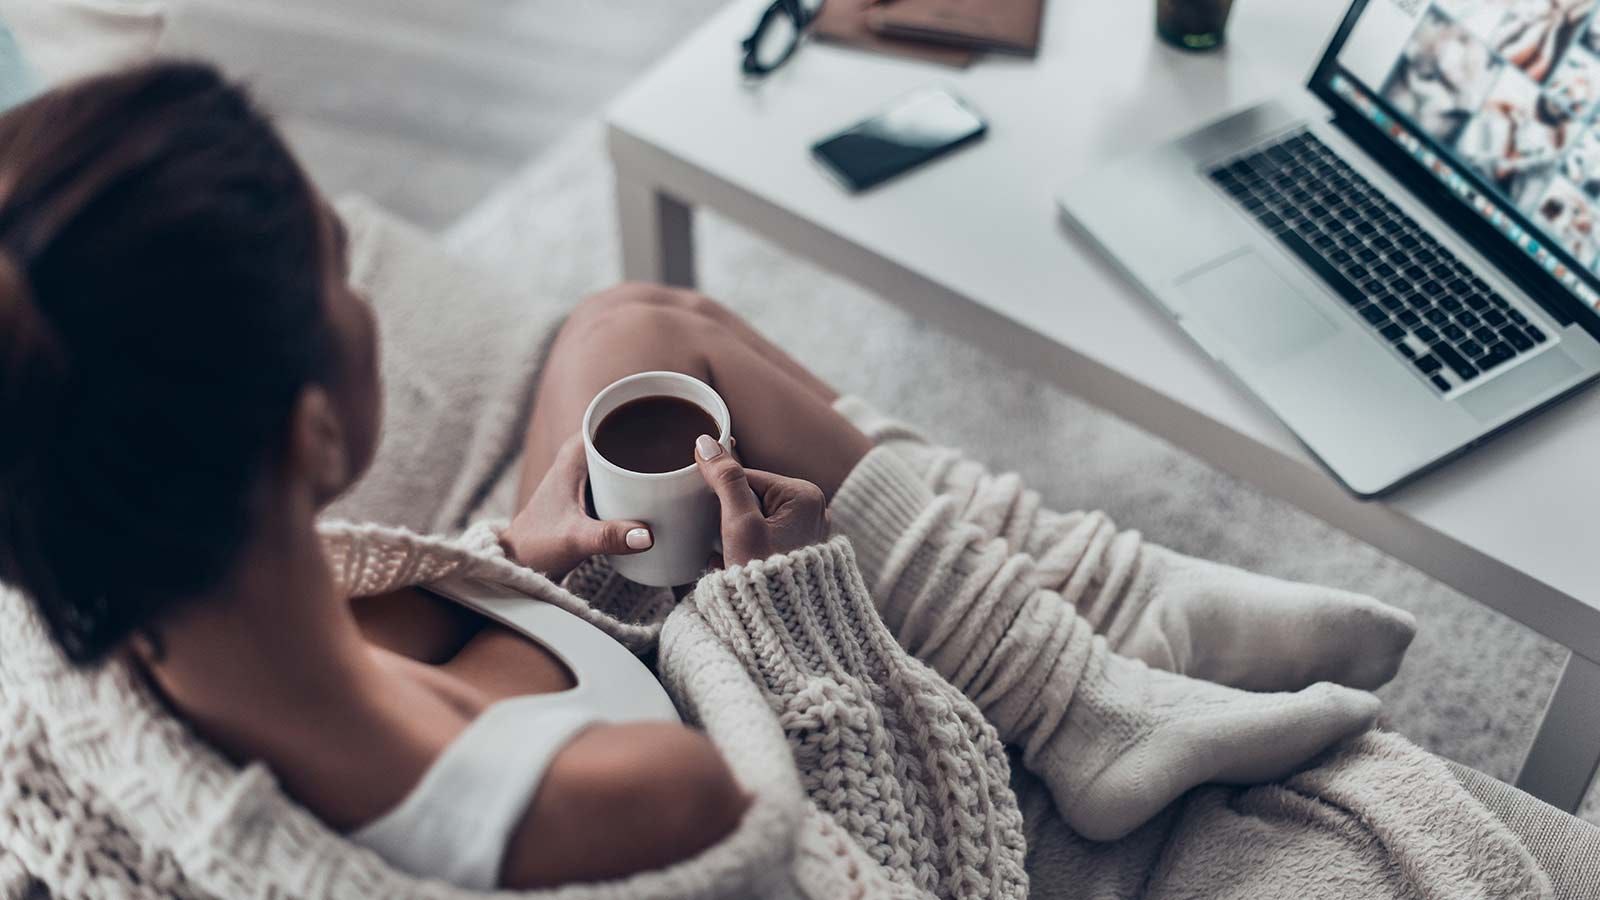 A woman sitting on her couch in a comfy sweater, holding a hot cup of coffee.